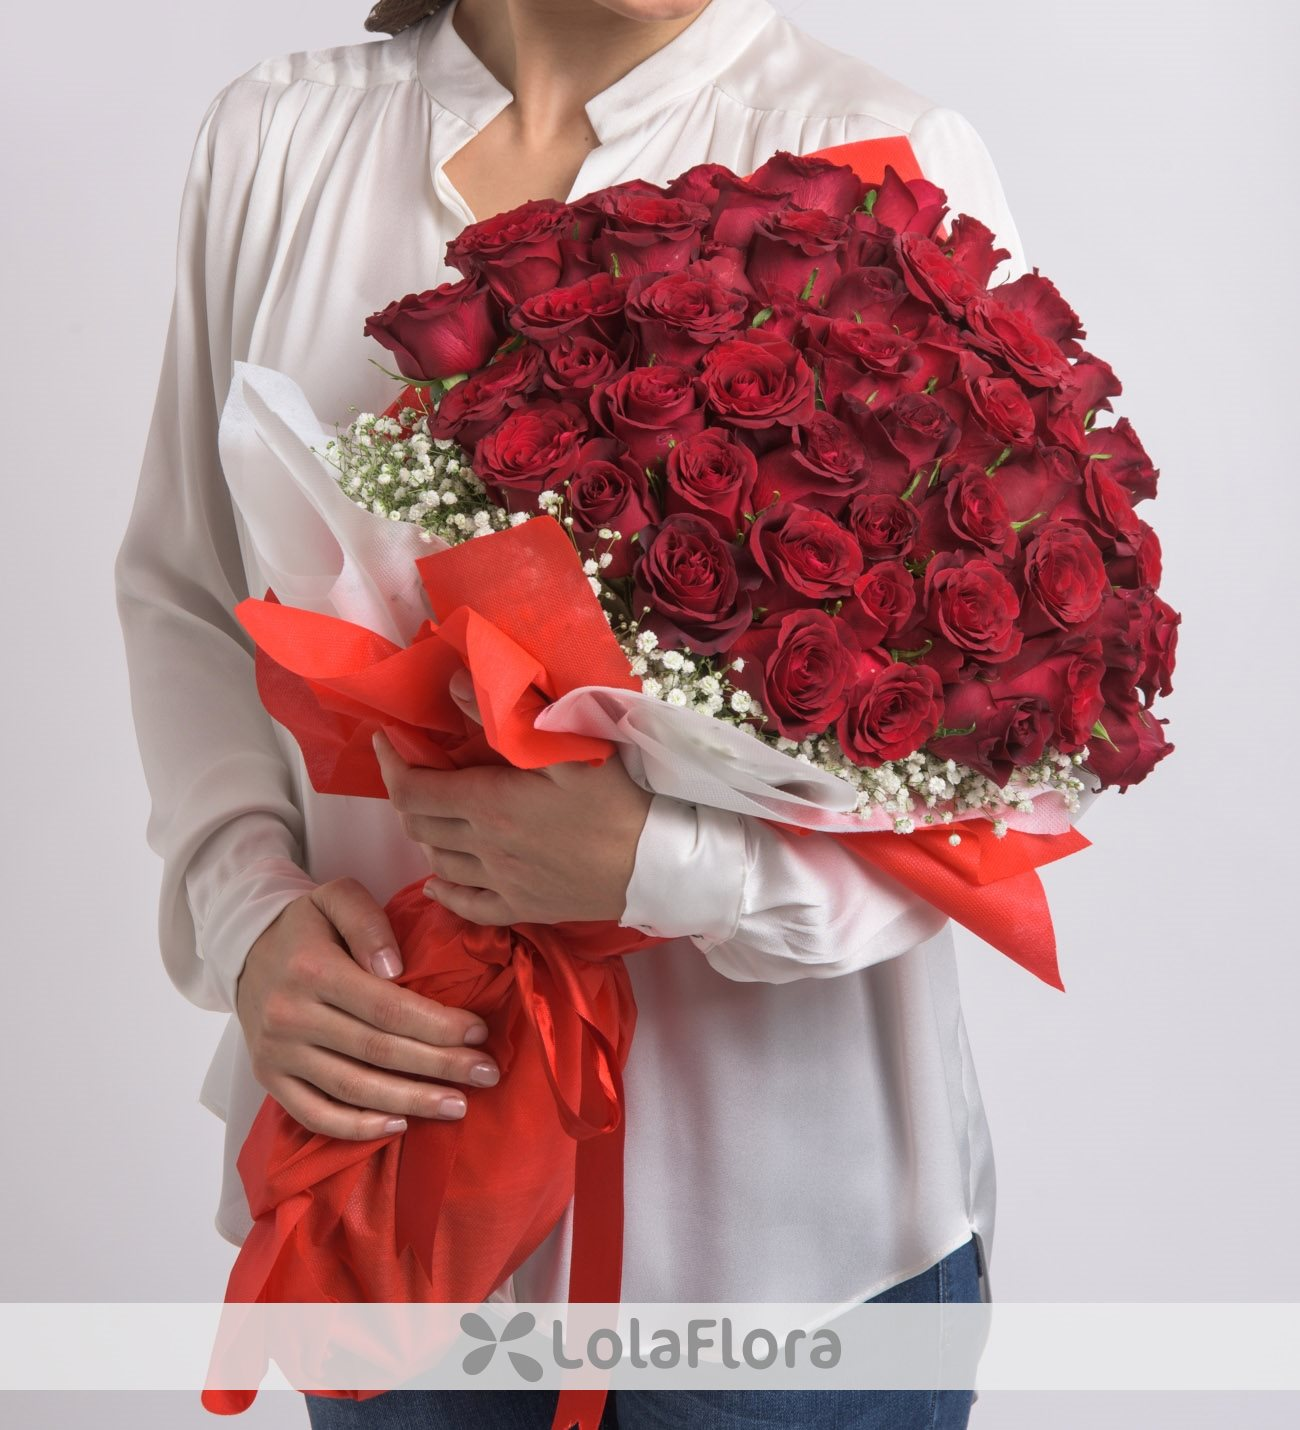 Lolaflora international flower delivery service bouquet of 60 red roses wholehearted love izmirmasajfo